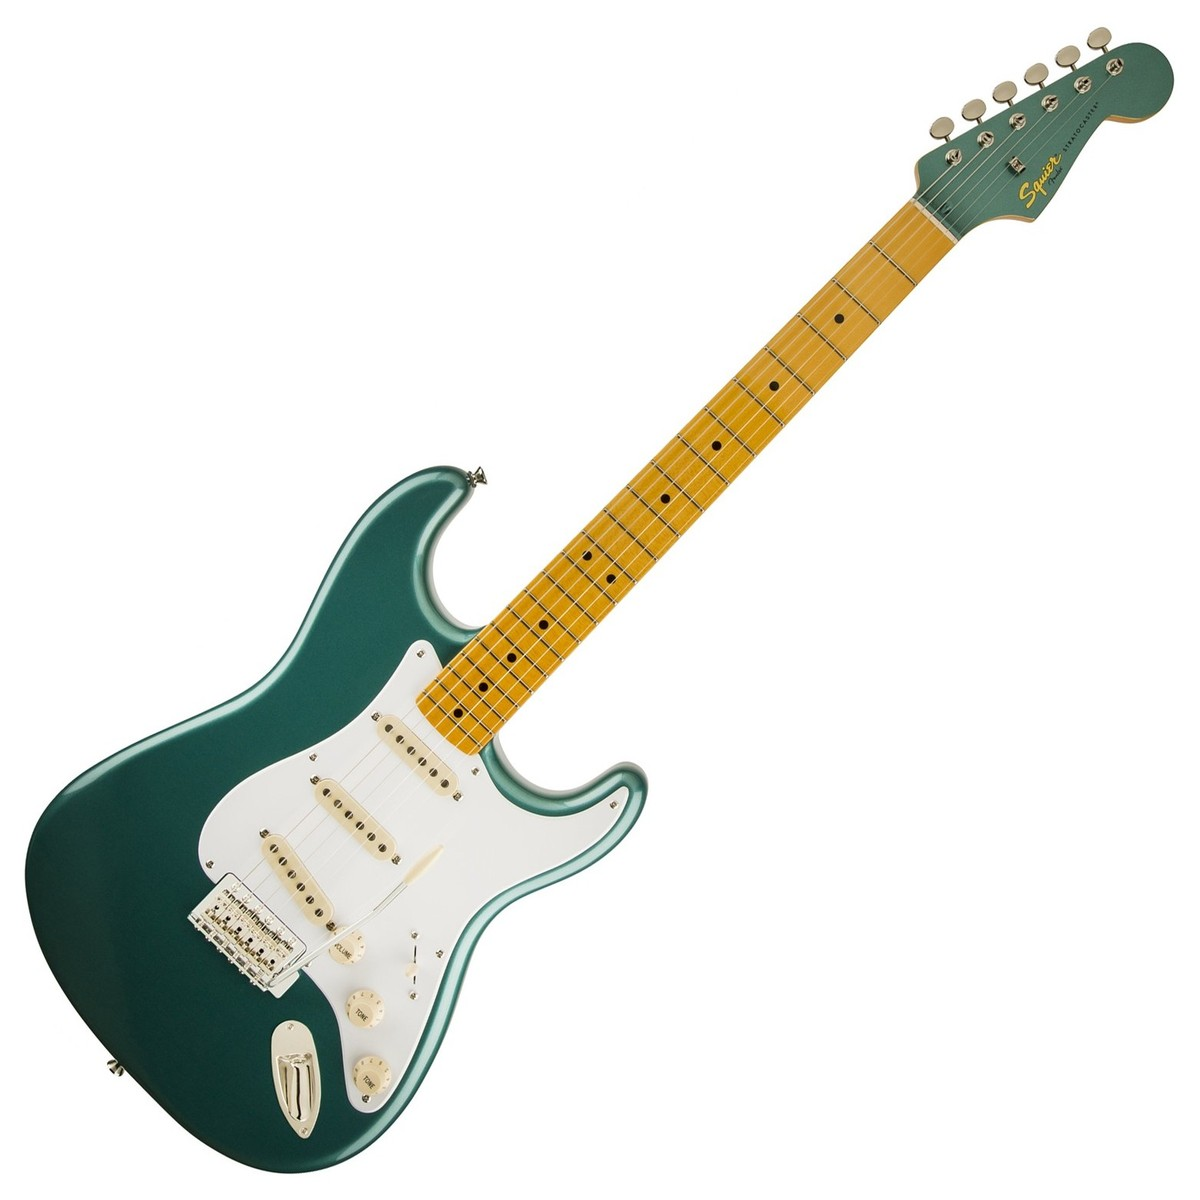 squier by fender classic vibe 50s stratocaster sherwood green at gear4music. Black Bedroom Furniture Sets. Home Design Ideas